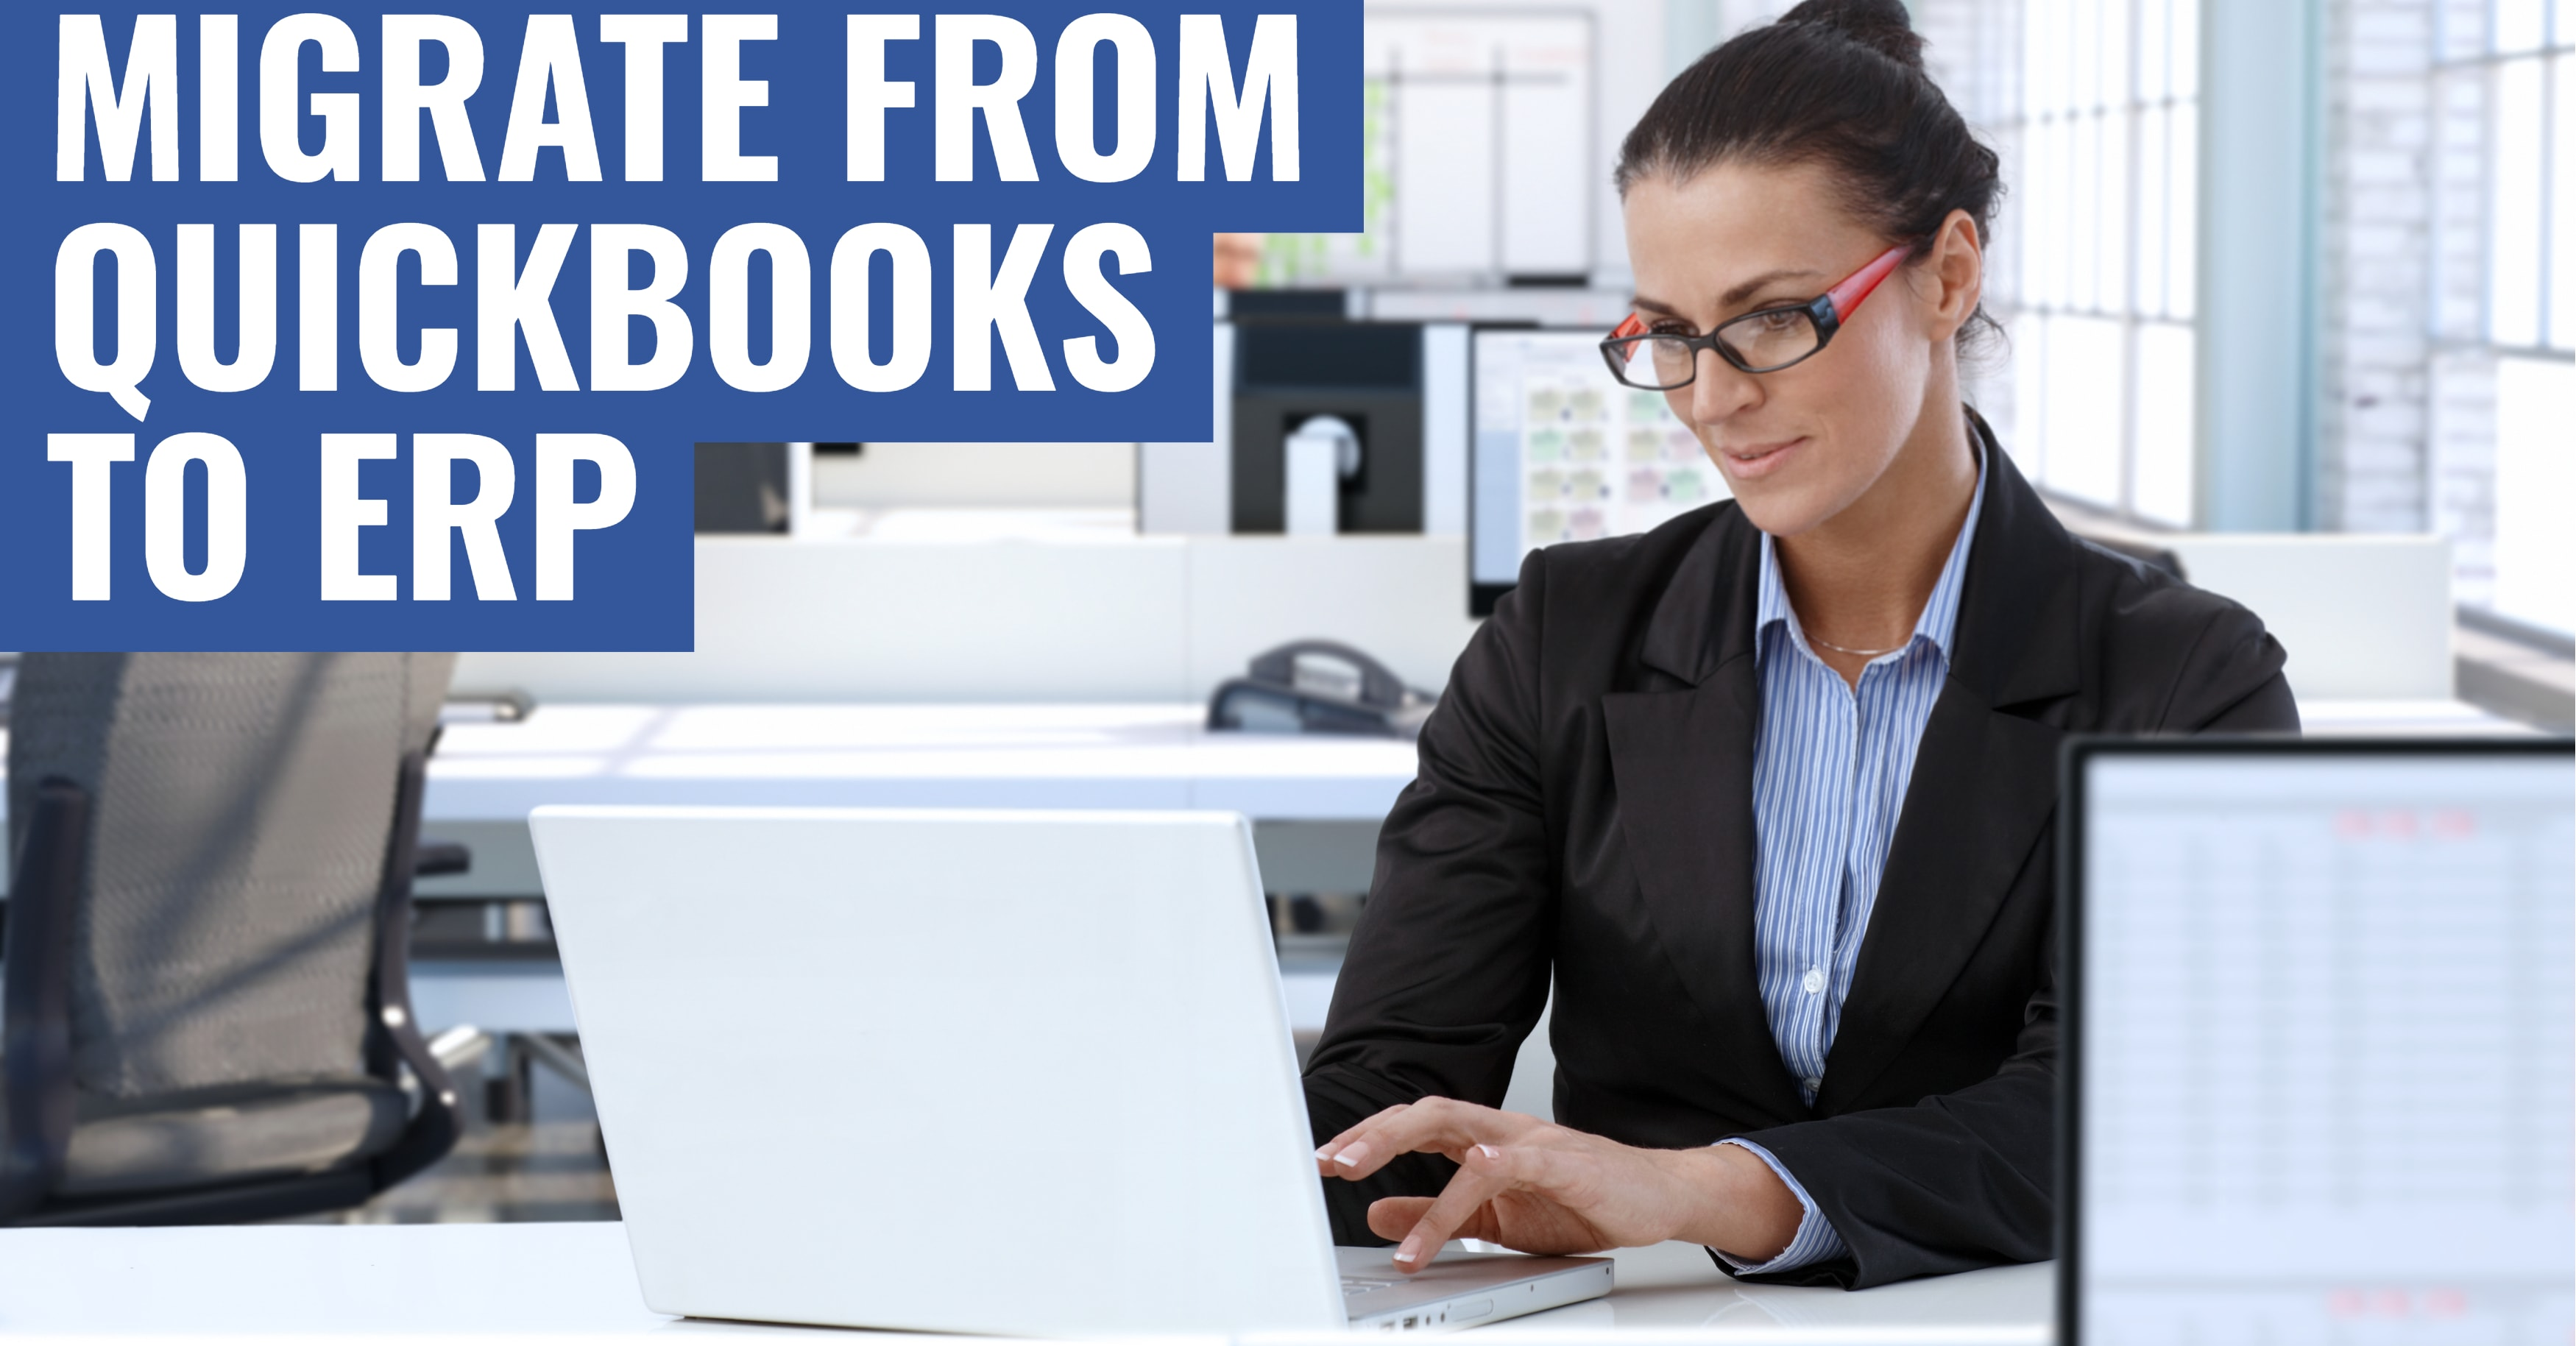 How to Migrate from QuickBooks to ERP